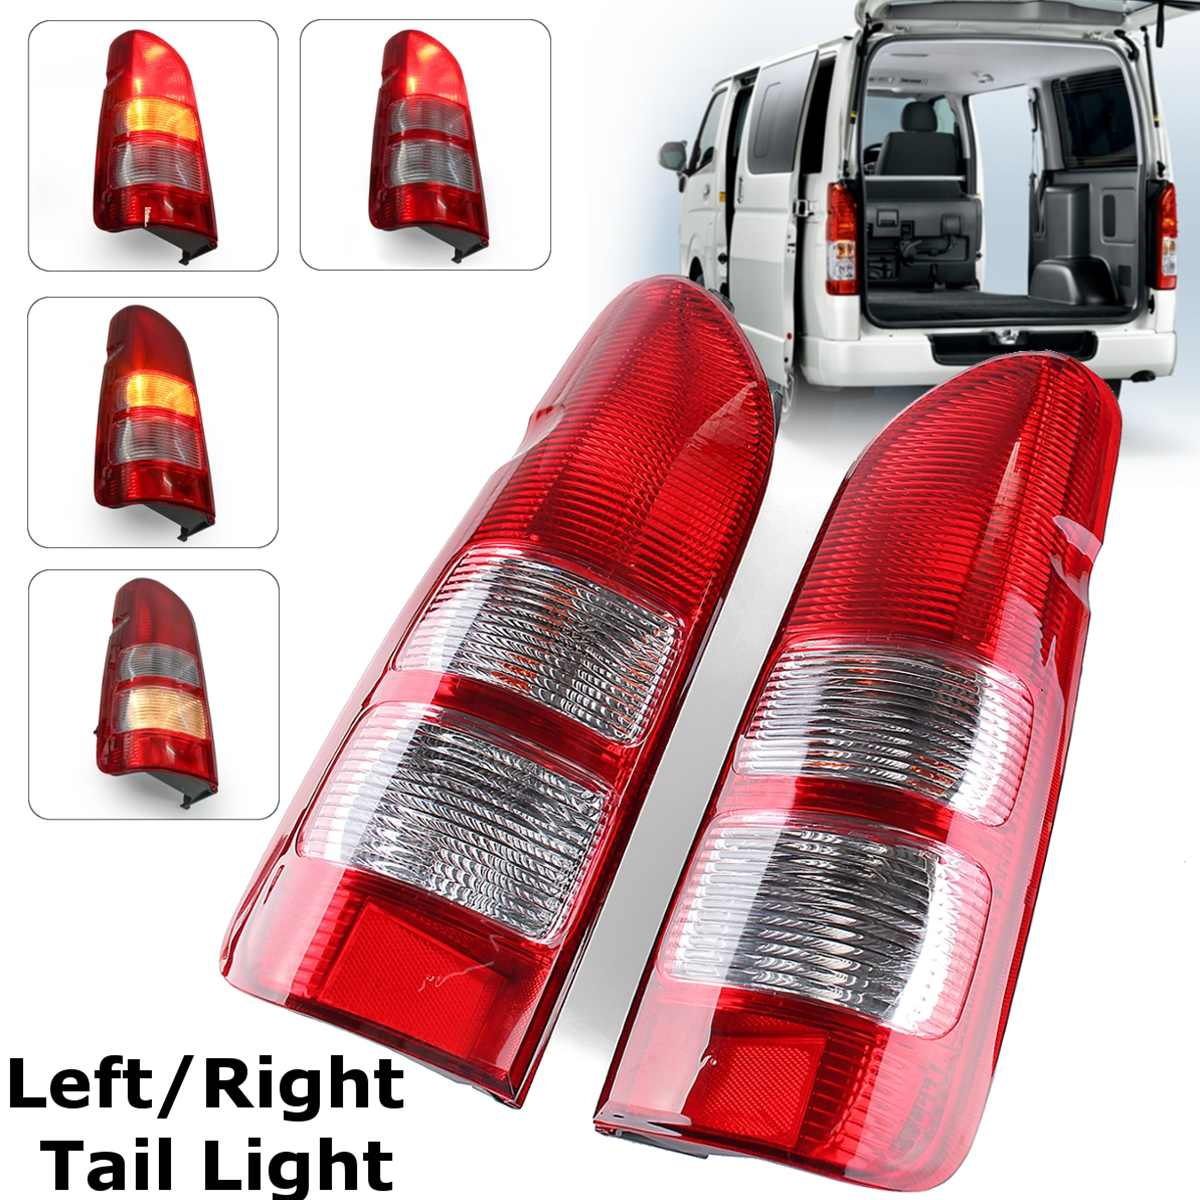 For Toyota Hiace Van 2005 06 07 08 09 2014LH RH Tail Light Lamp suit 200 Series with Wire harness and Halogen bulbs tail lamp